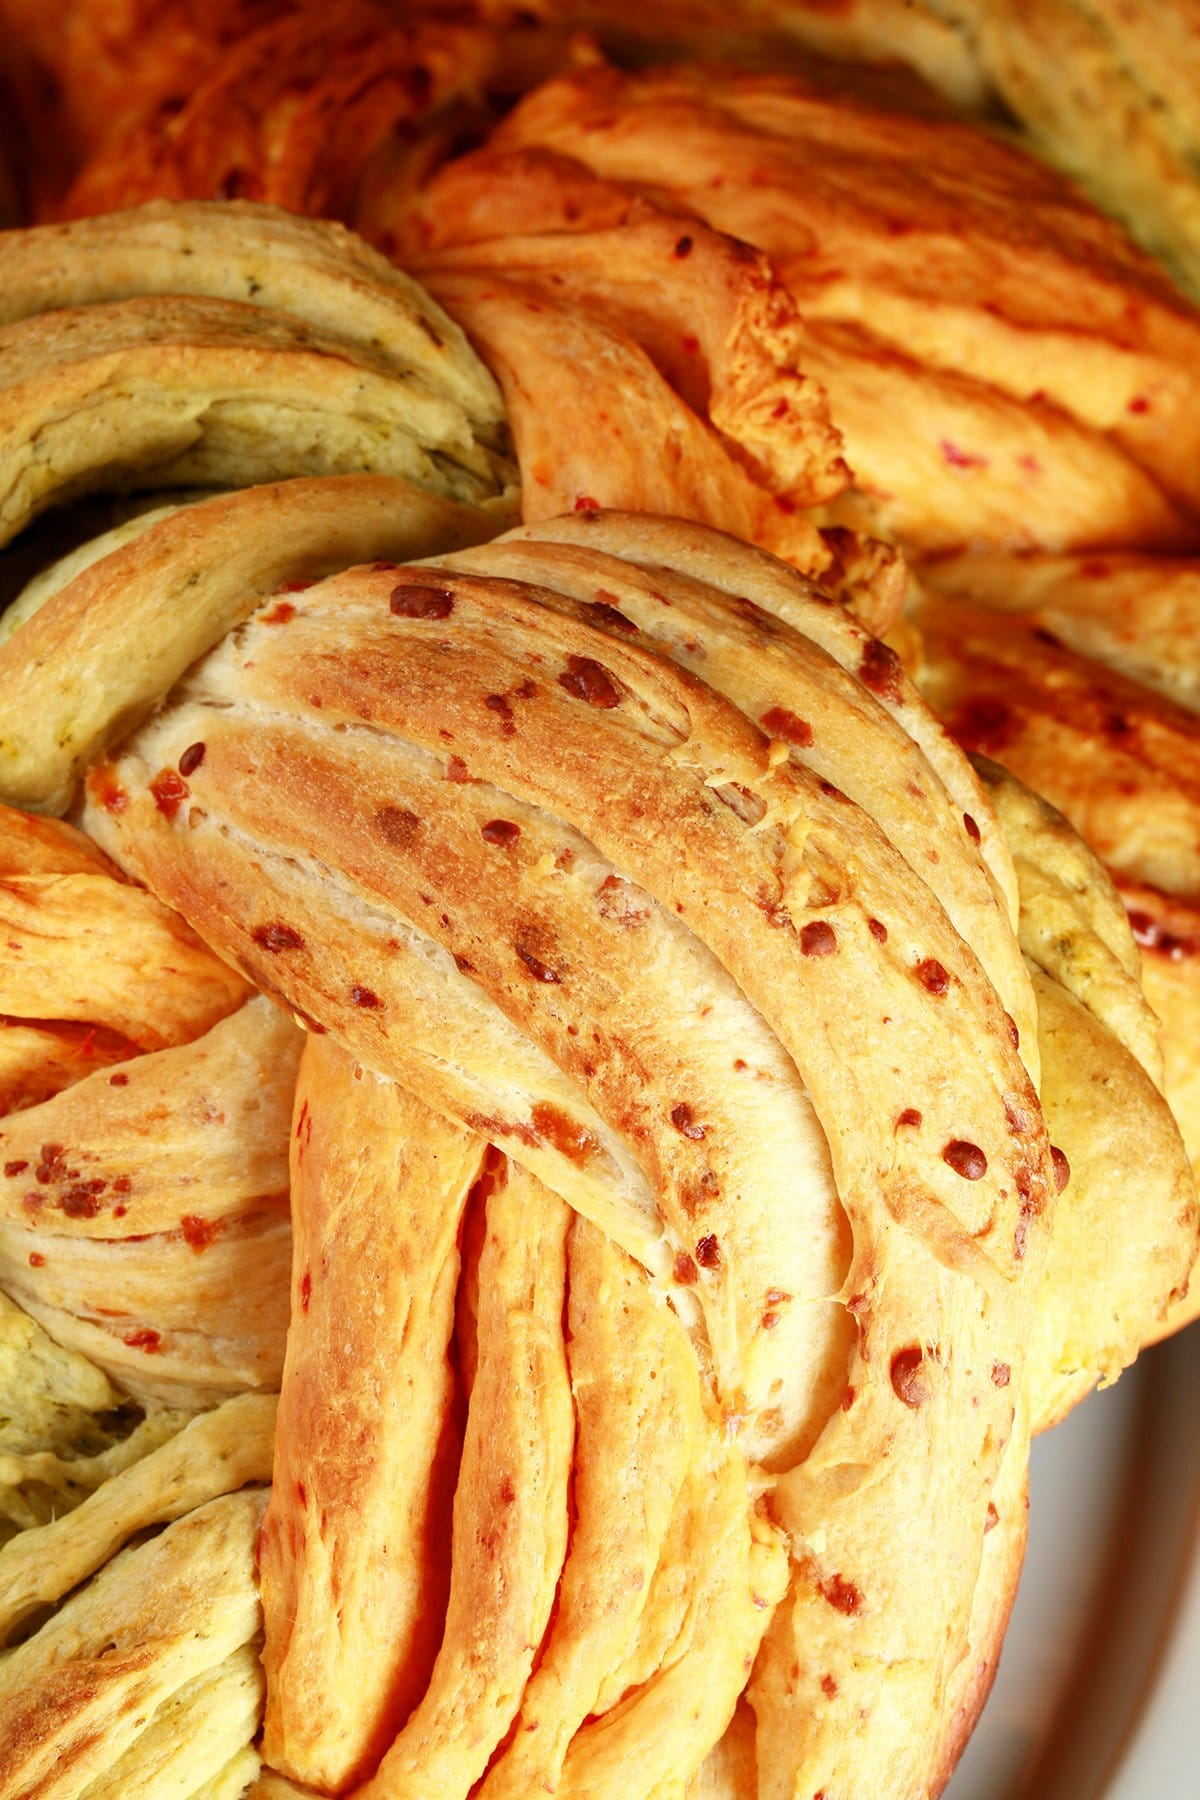 A close up view of a loaf of a tri-colour braid bread. The breads are green/basil, tan/asiago, and red/roasted red pepper.